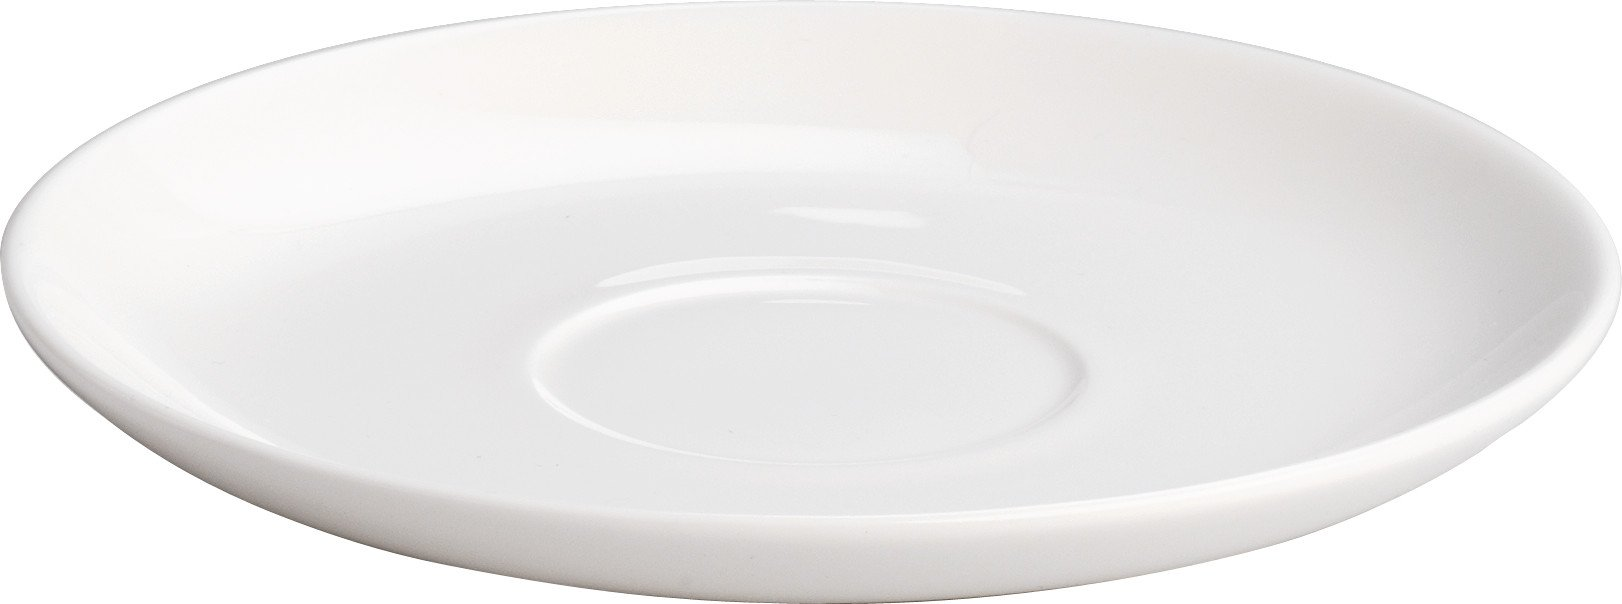 Alessi''All-Time'' Saucers For Teacup in Bone China (Set of 4), White